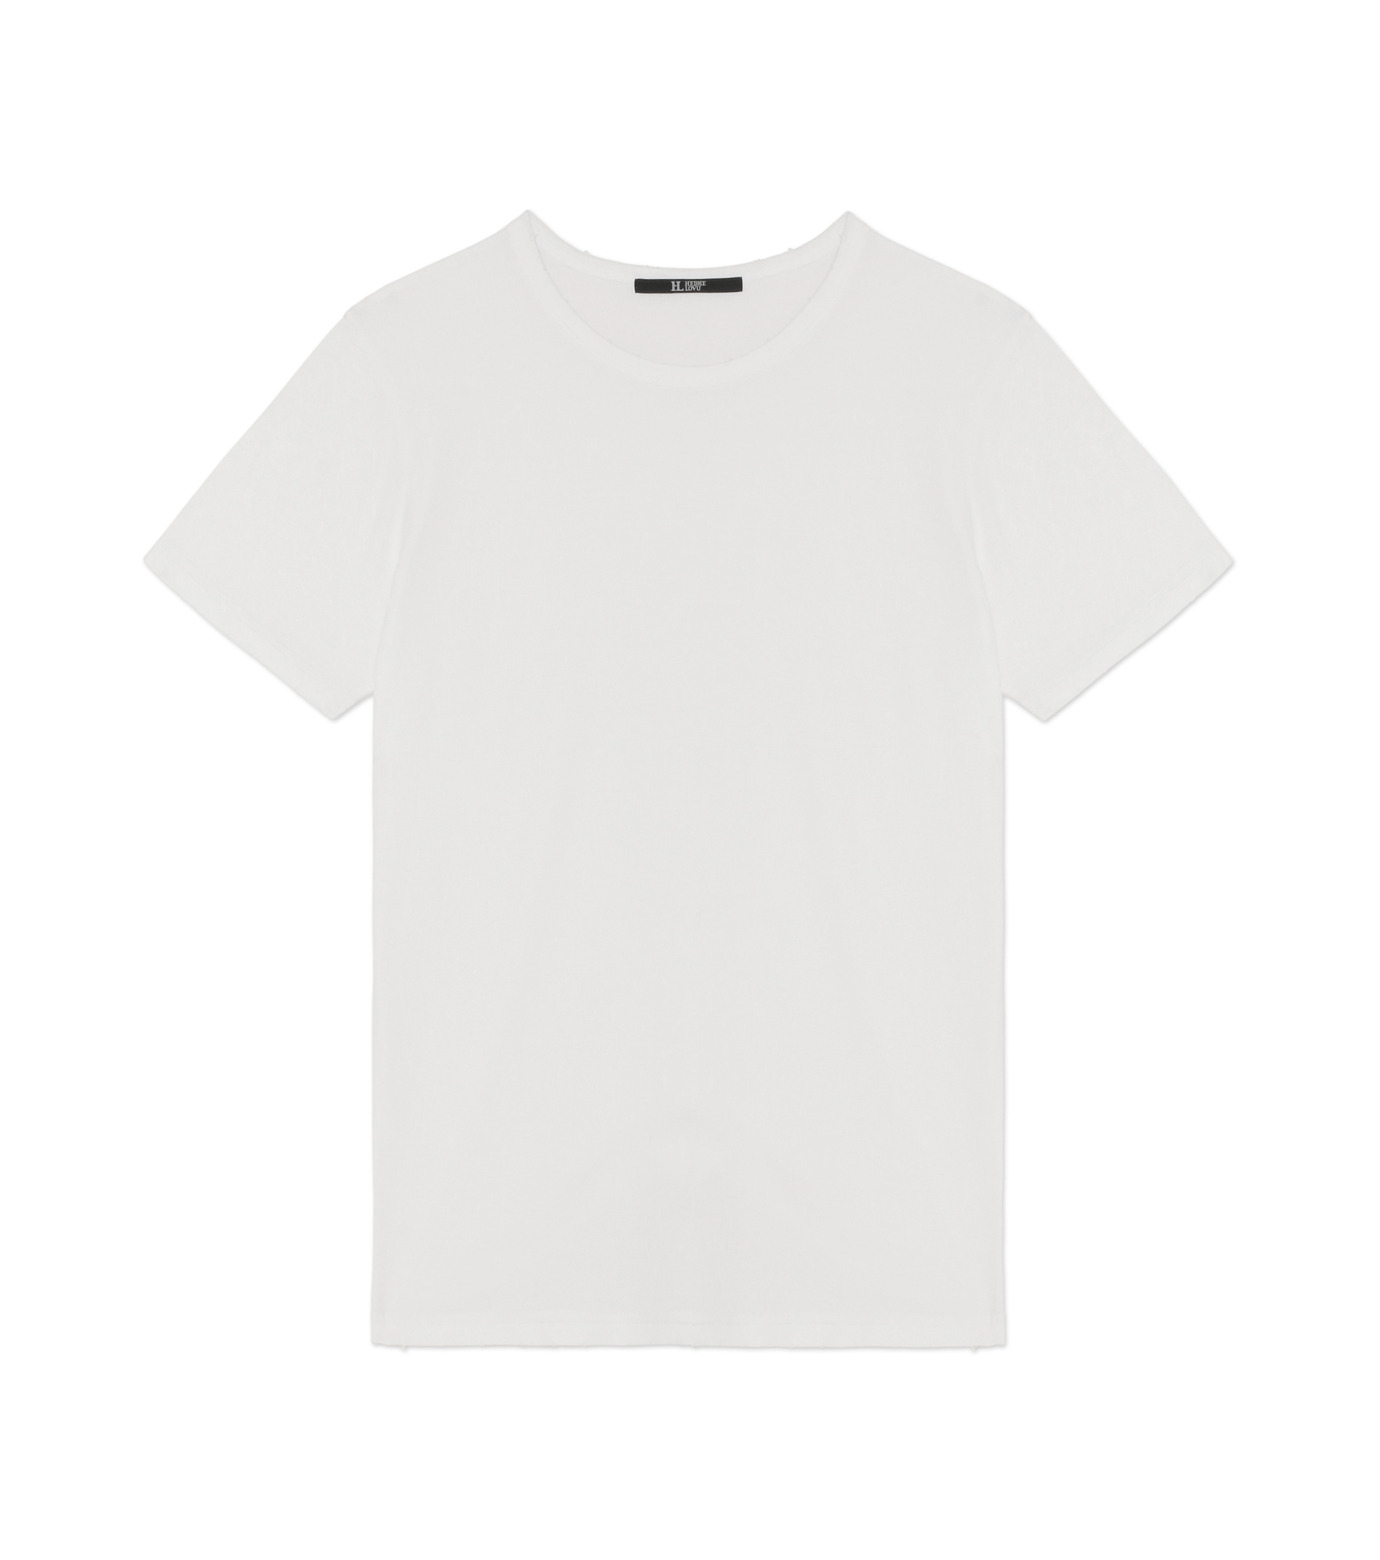 HL HEDDIE LOVU(エイチエル・エディールーヴ)のDAMAGE TEE-WHITE(カットソー/cut and sewn)-18A92001-4 拡大詳細画像1